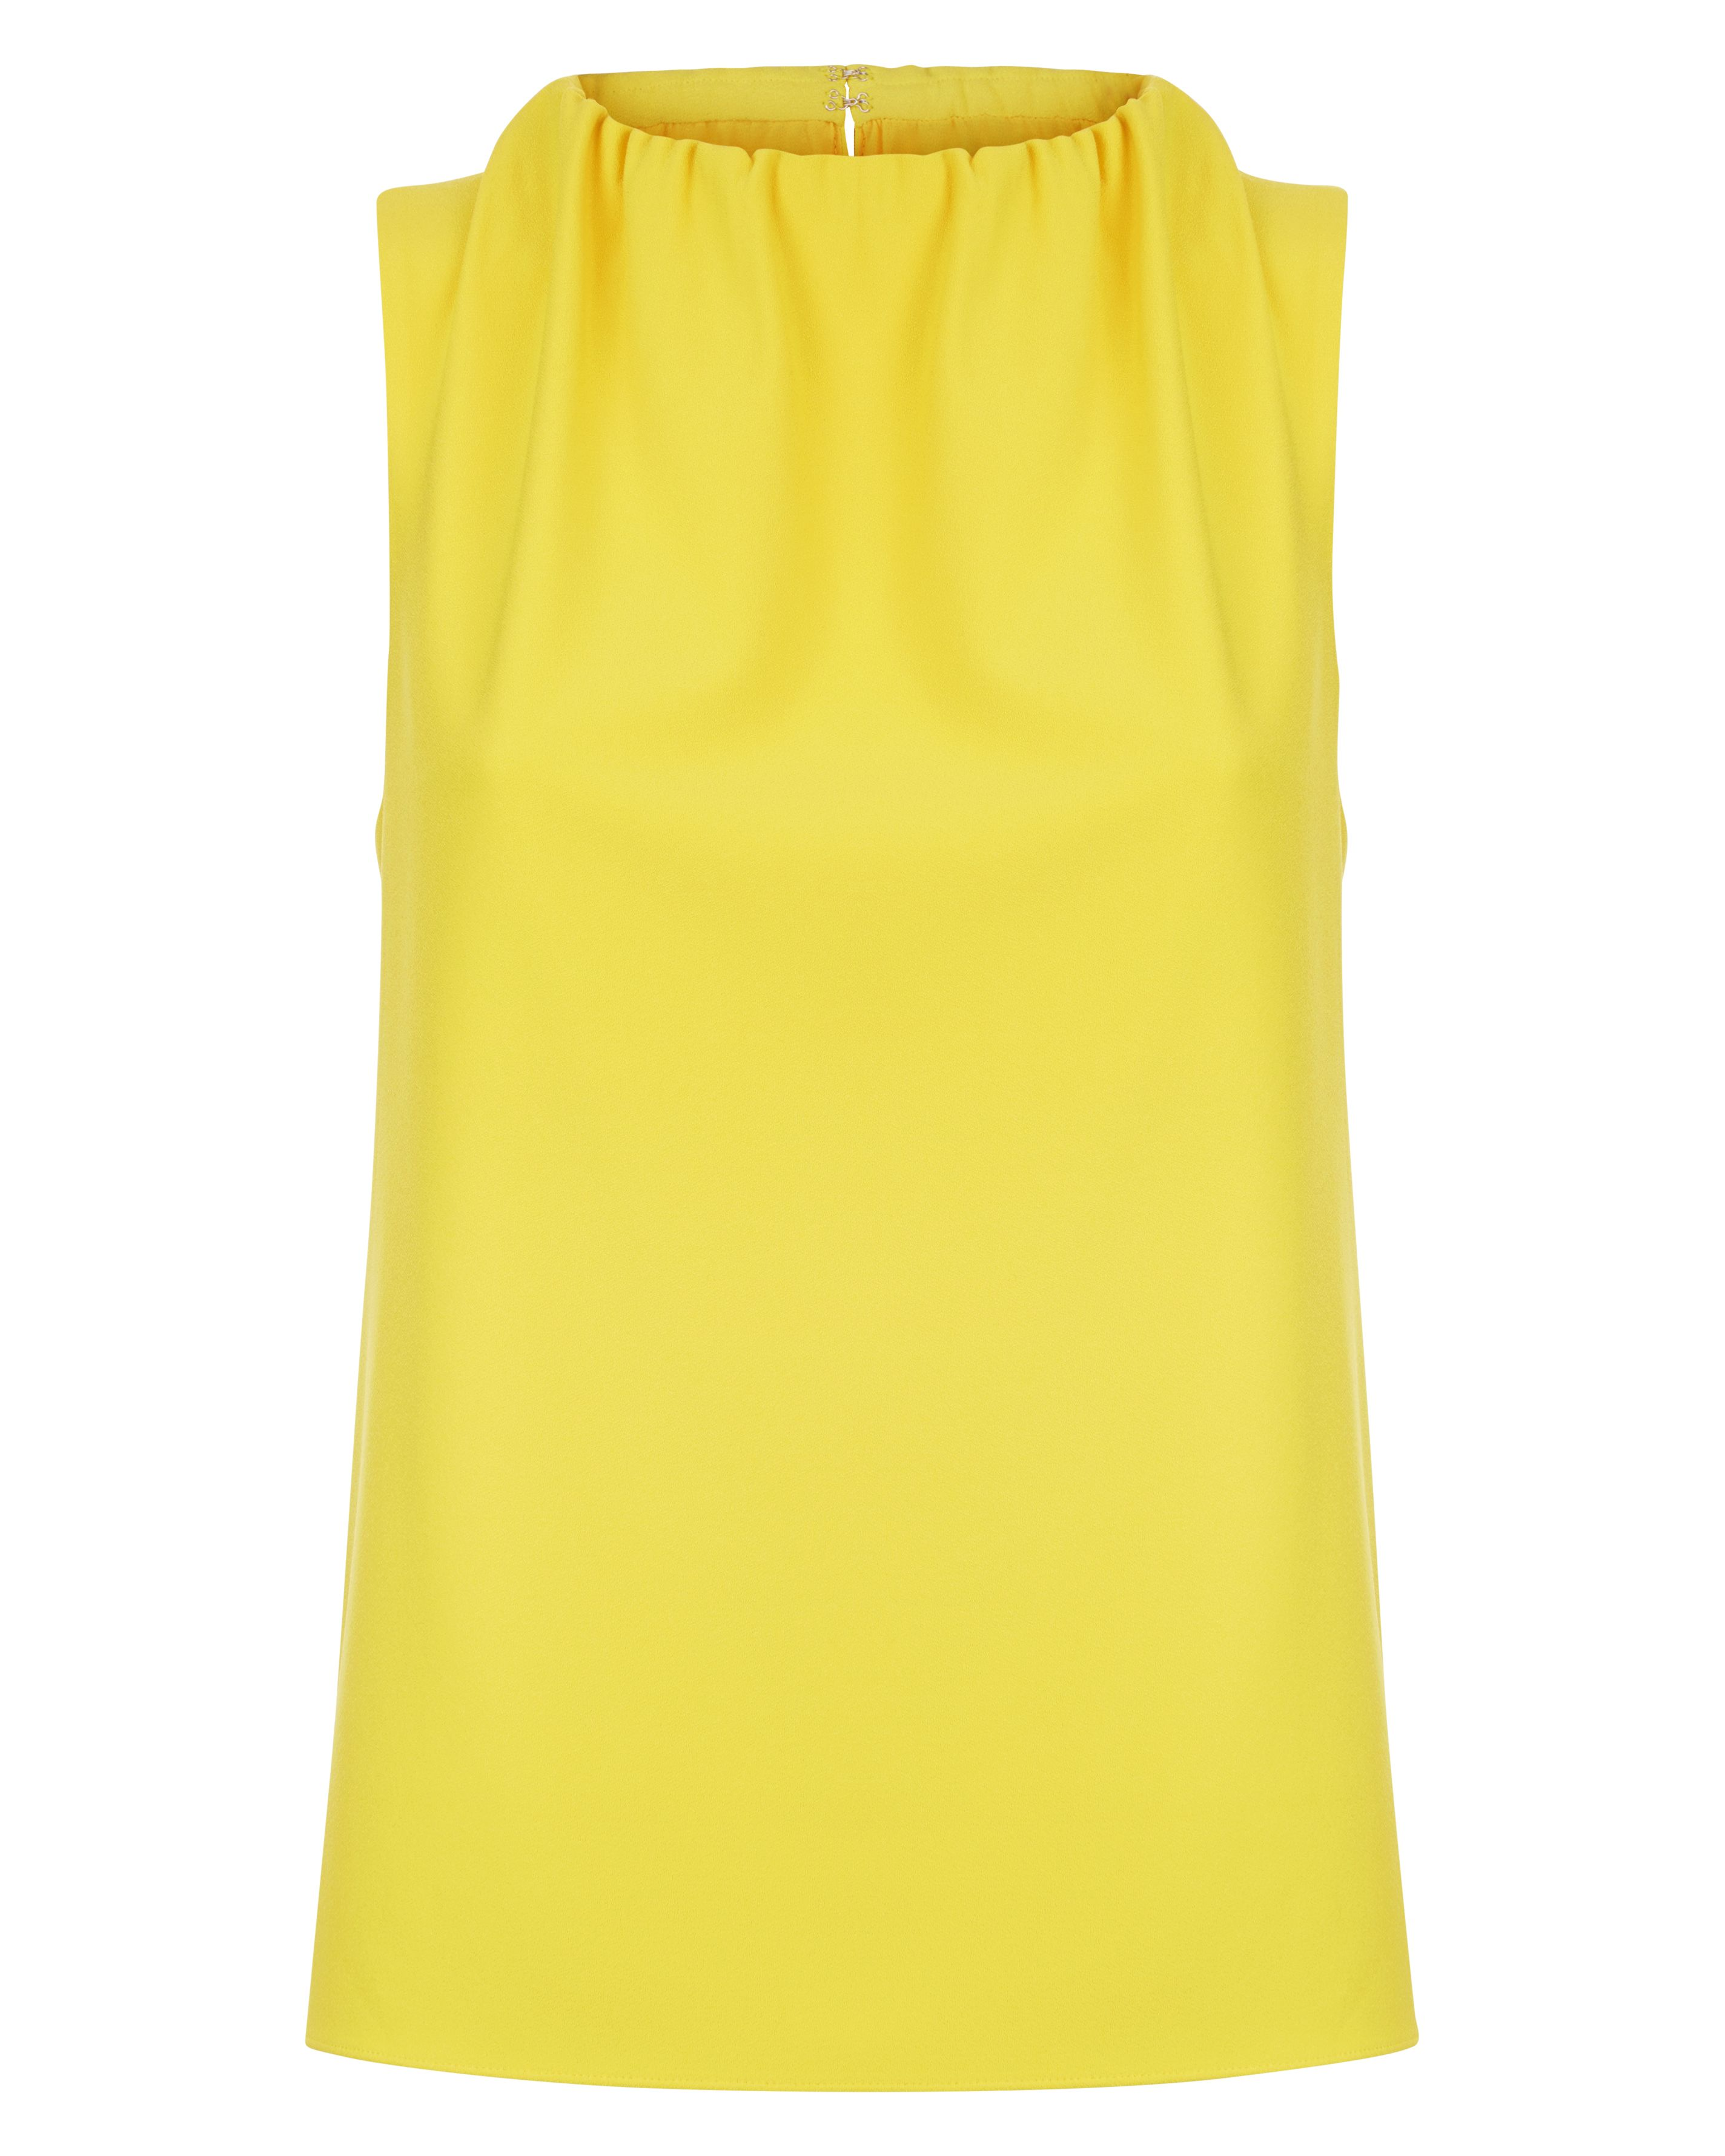 Jaeger Ruched Neck Sleeveless Top, Yellow